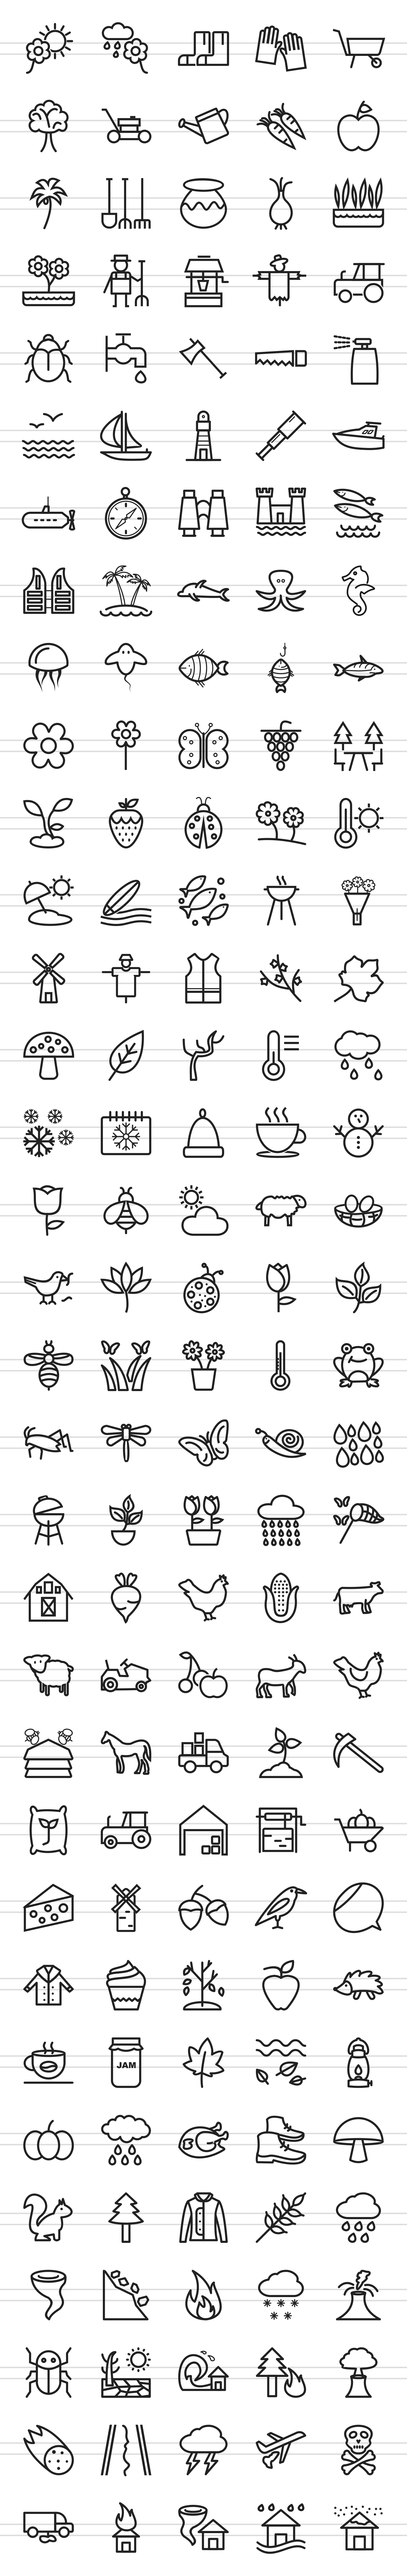 166 Nature & Outdoor Line Icons example image 3